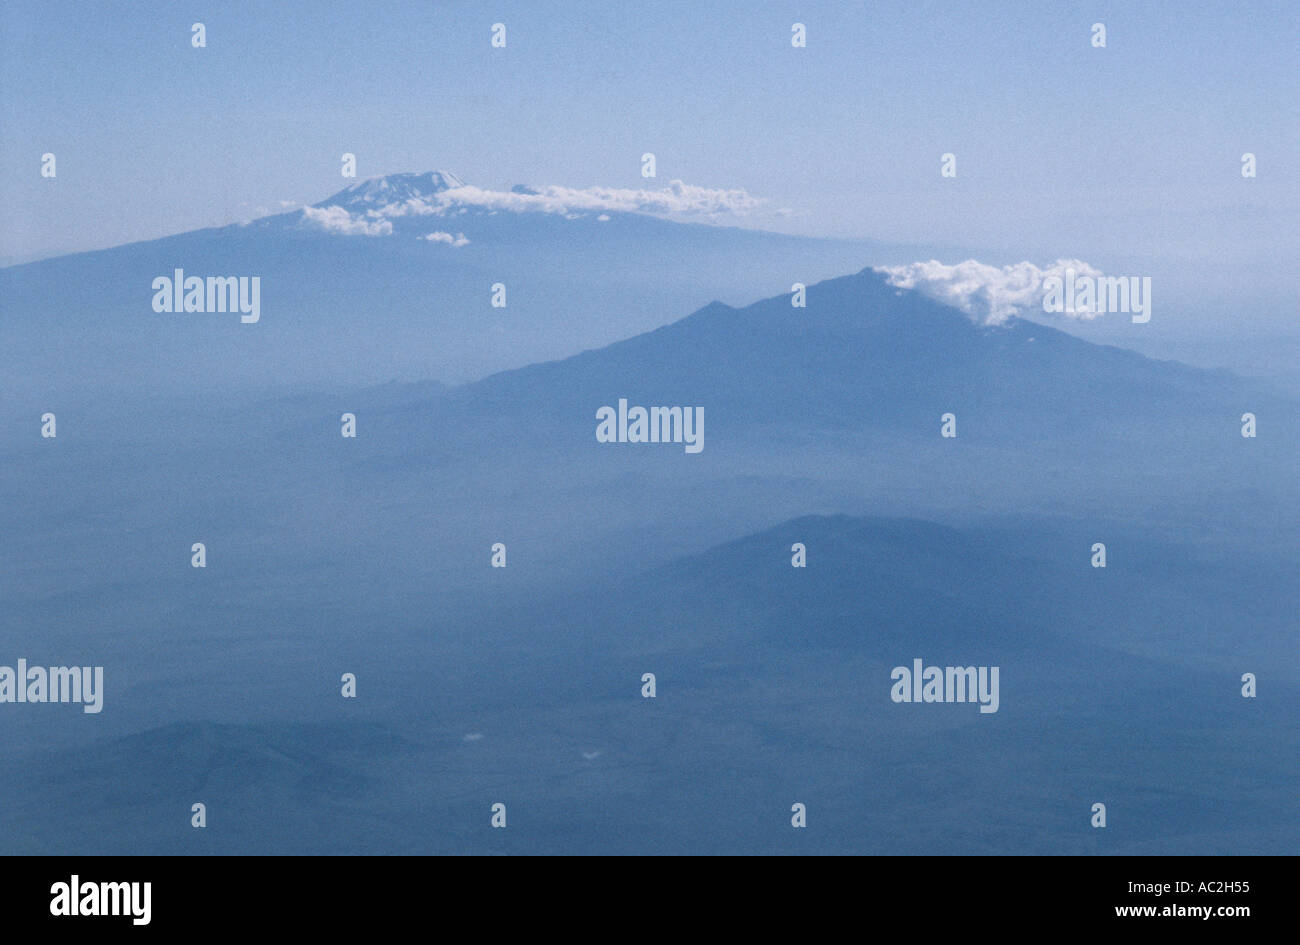 KILIMANJARO TANZANIAPHOTOGRAPHED FROM AIRCRAFT EN ROUTE SOUTH ACROSS AFRICA.  2005 - Stock Image